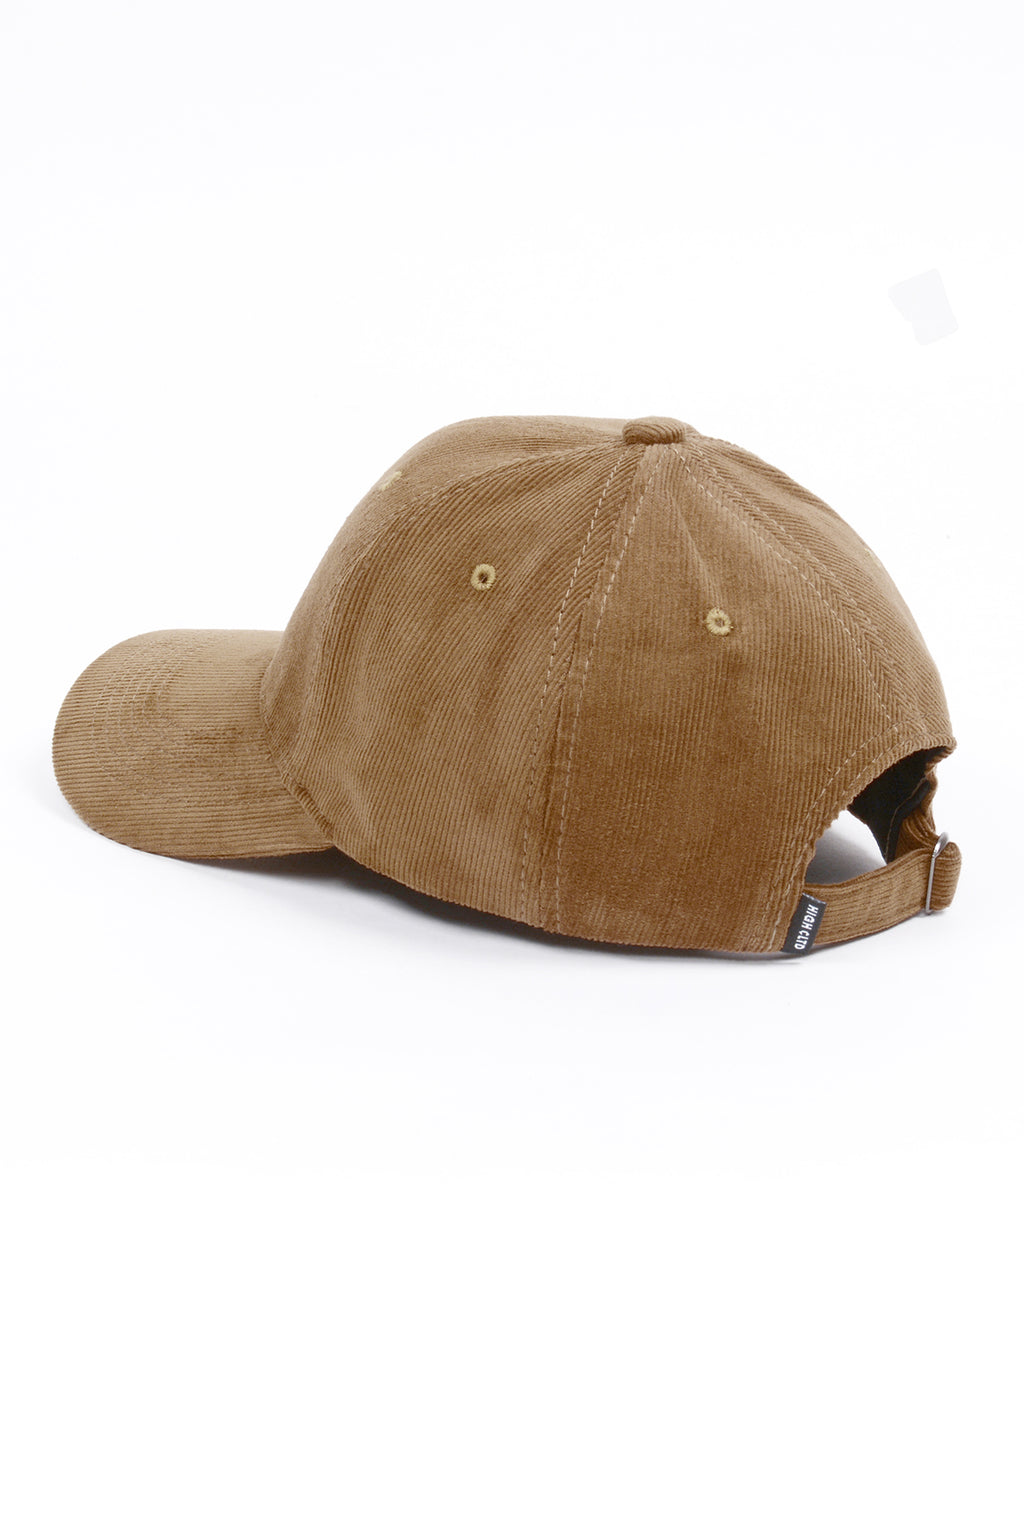 'H' WING SILHOUETTE BASEBALL CAP | CAMEL -127